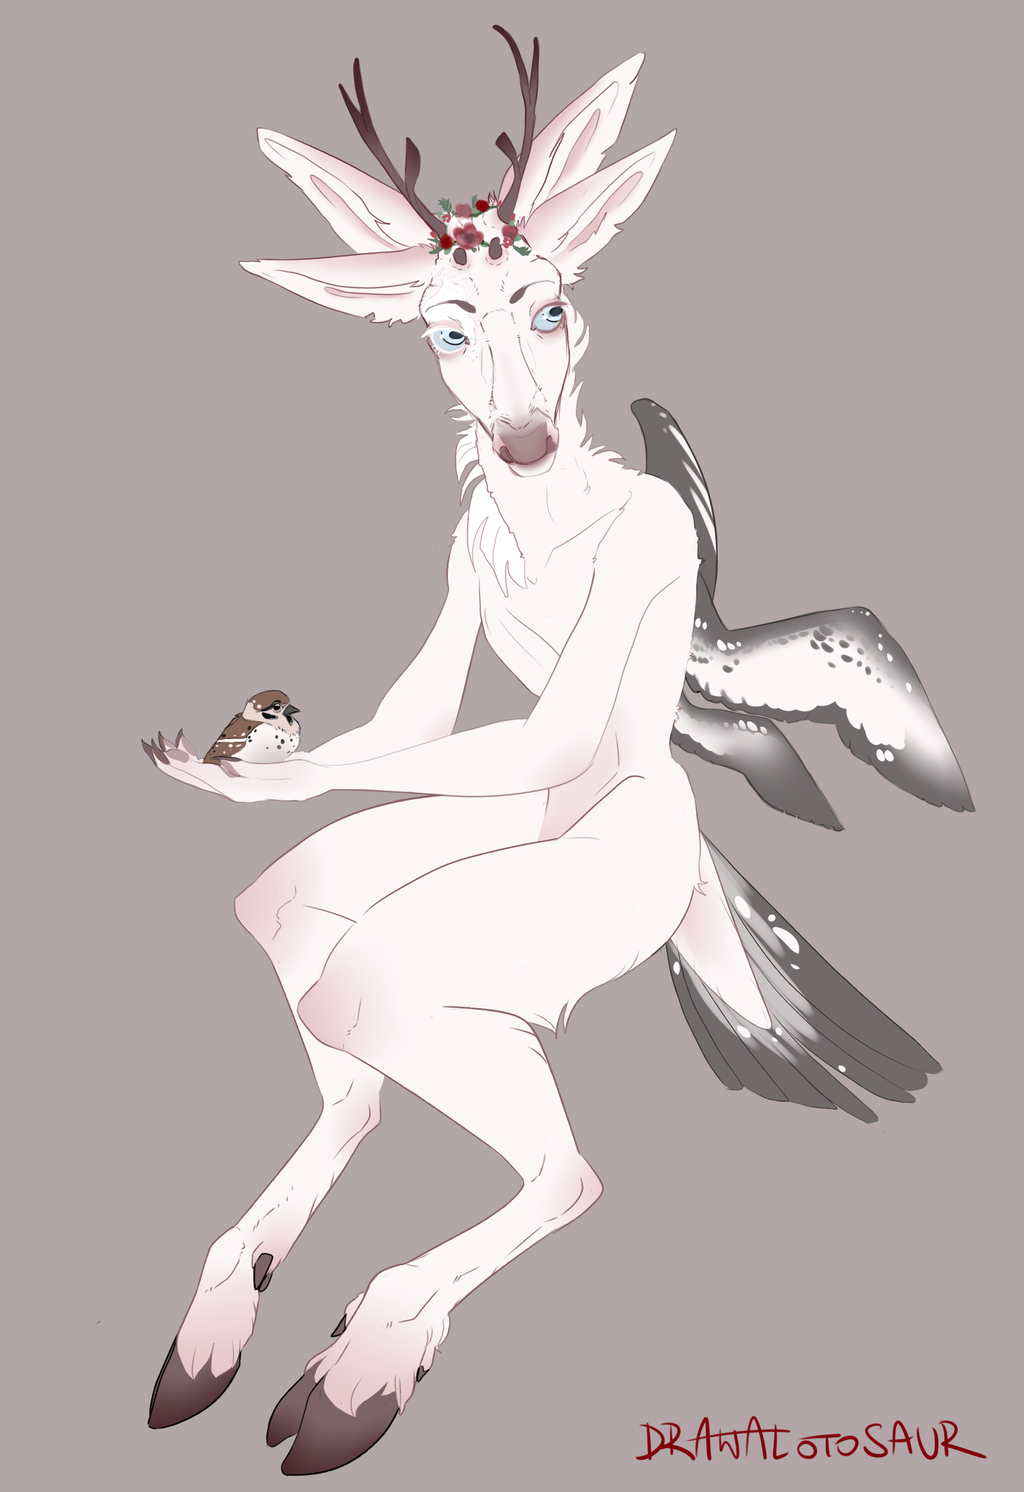 Most recent image: wolrabou (adopt possible)